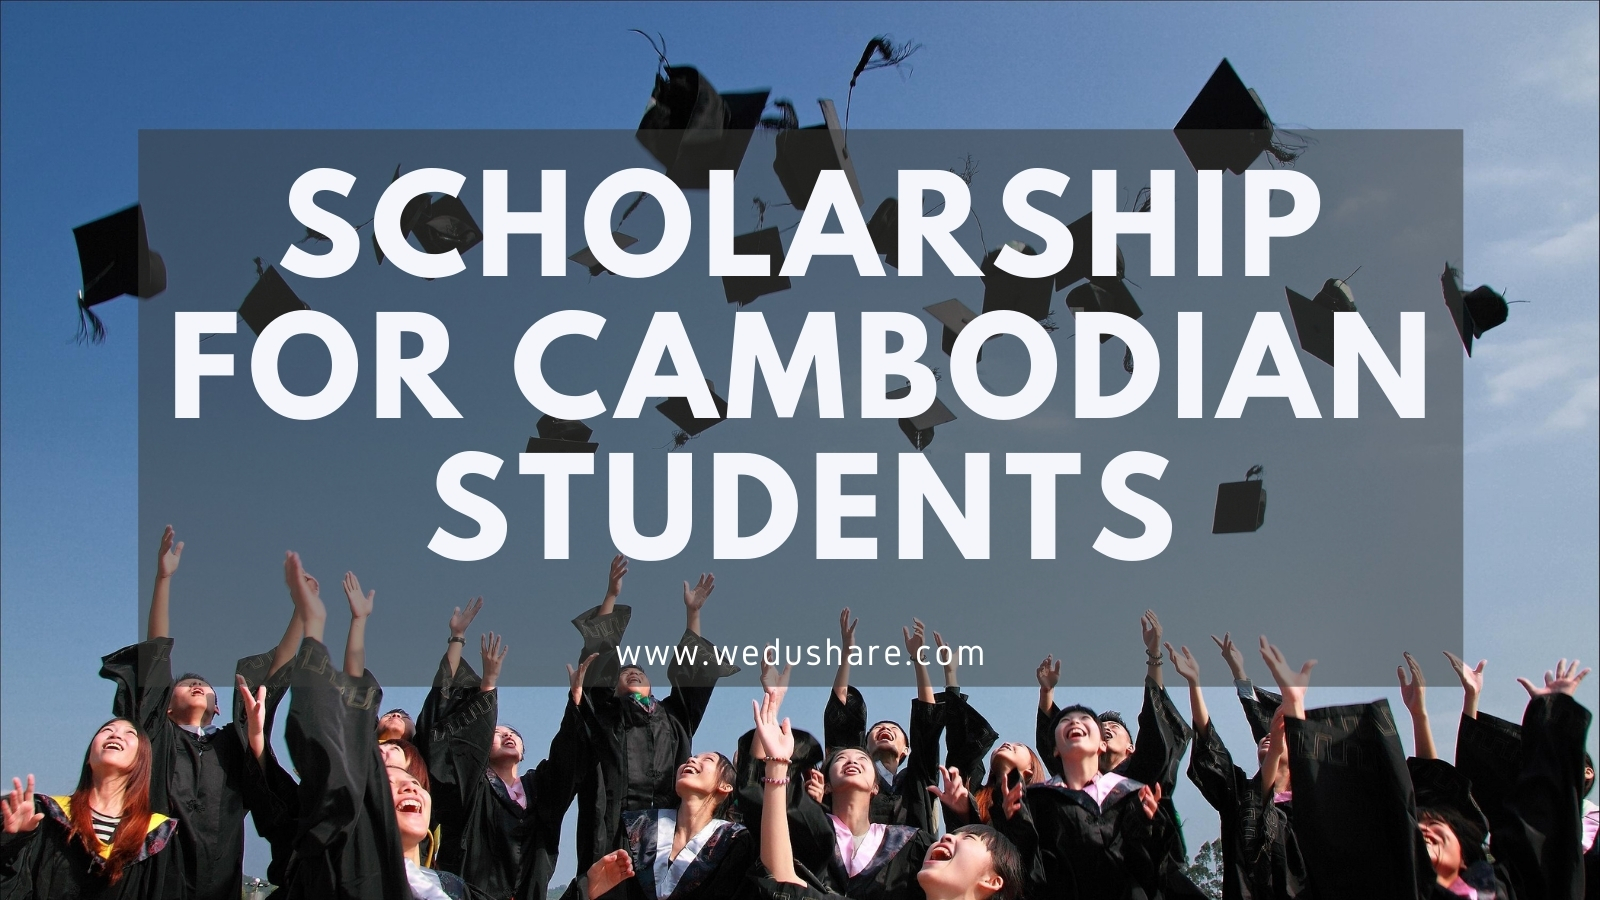 List of Scholarship for Cambodian Students